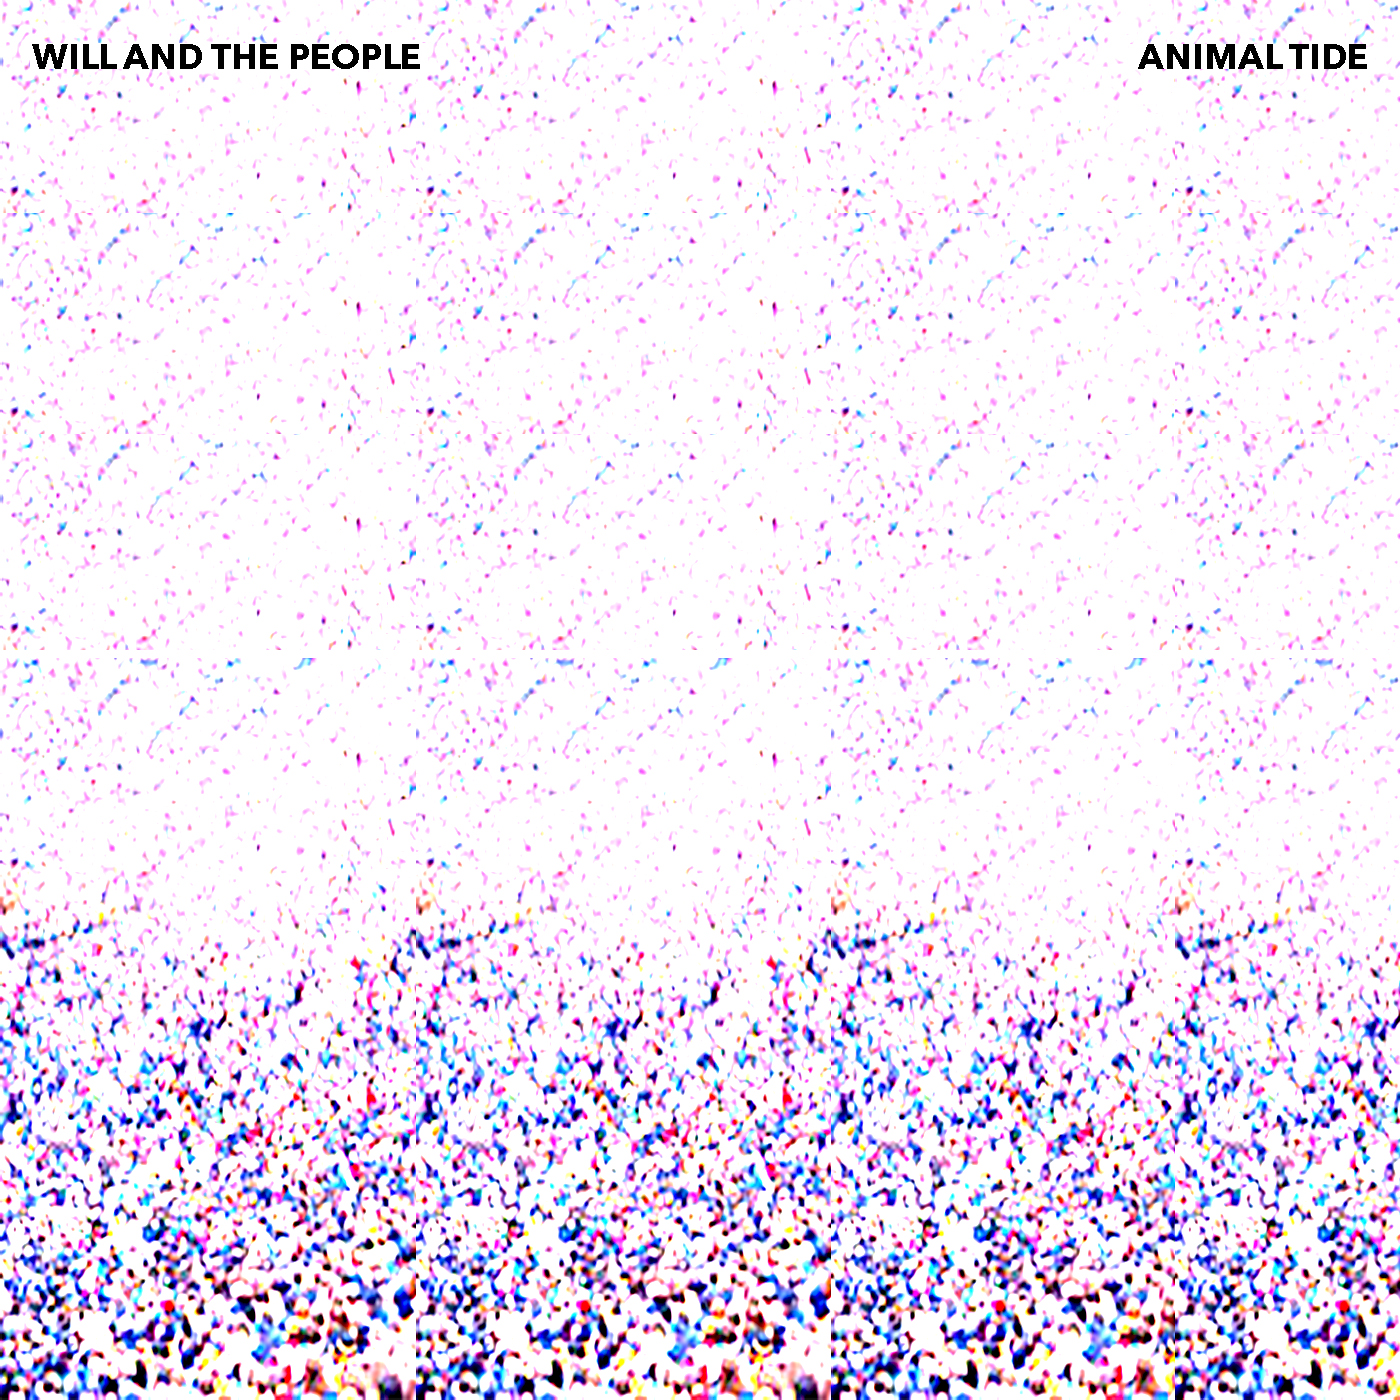 Animal Tide - FREE - Will and The People